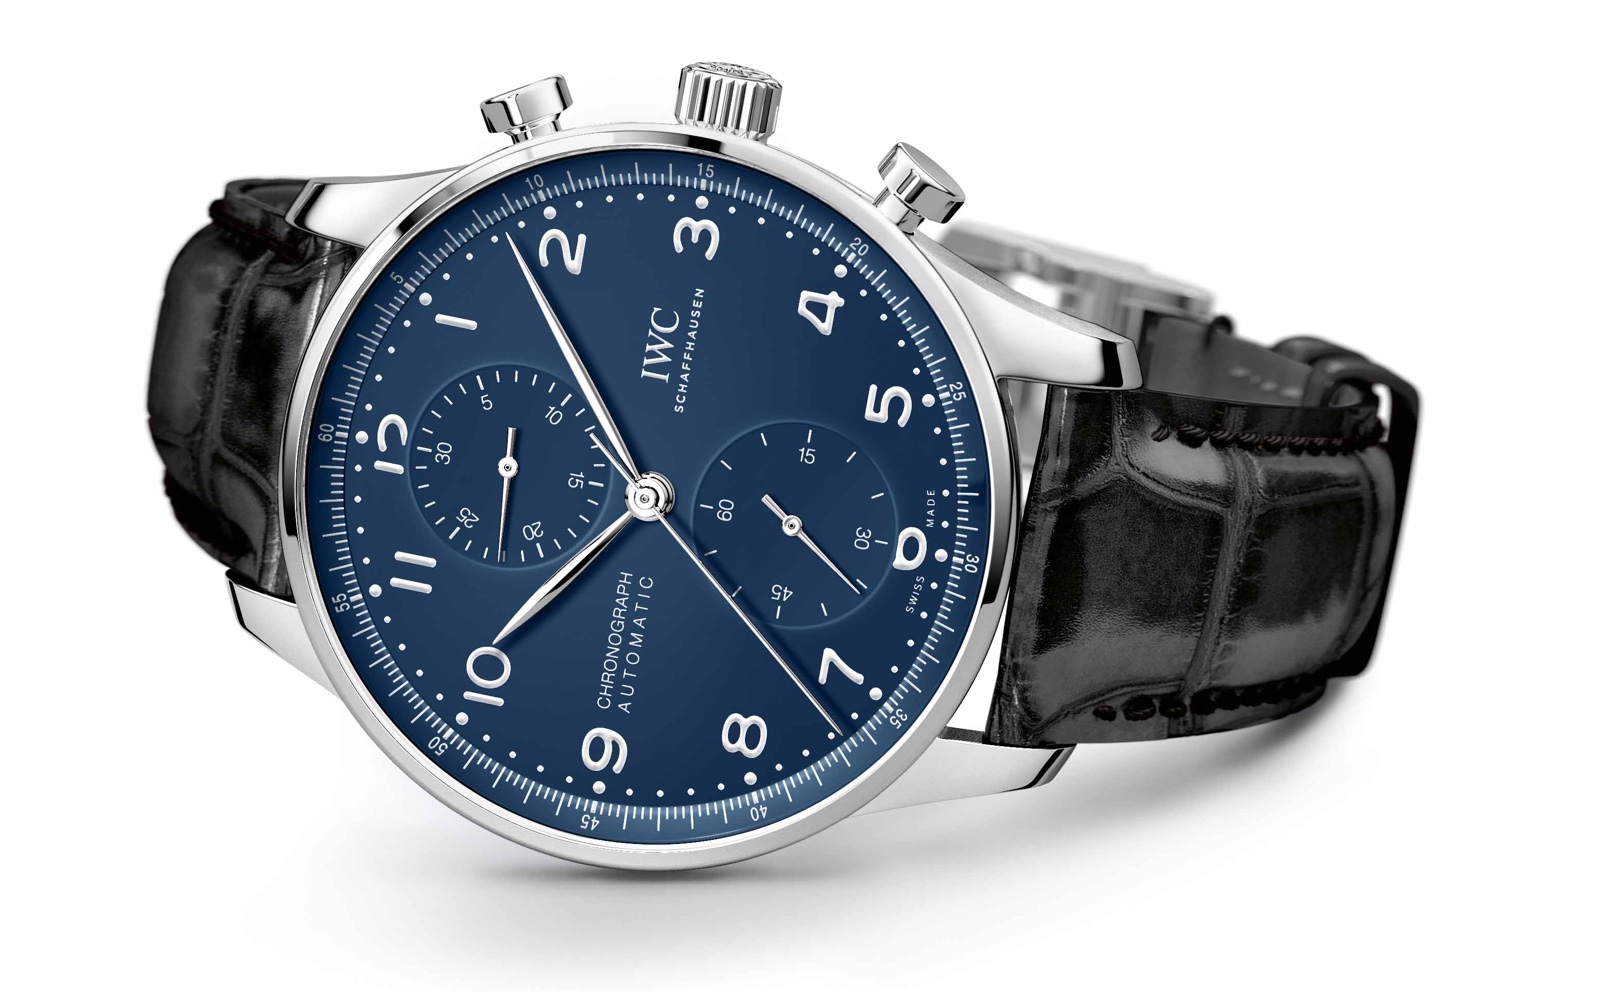 IWC Portugieser Chronograph 150 Years Coleccion Jubilee SIHH 2018